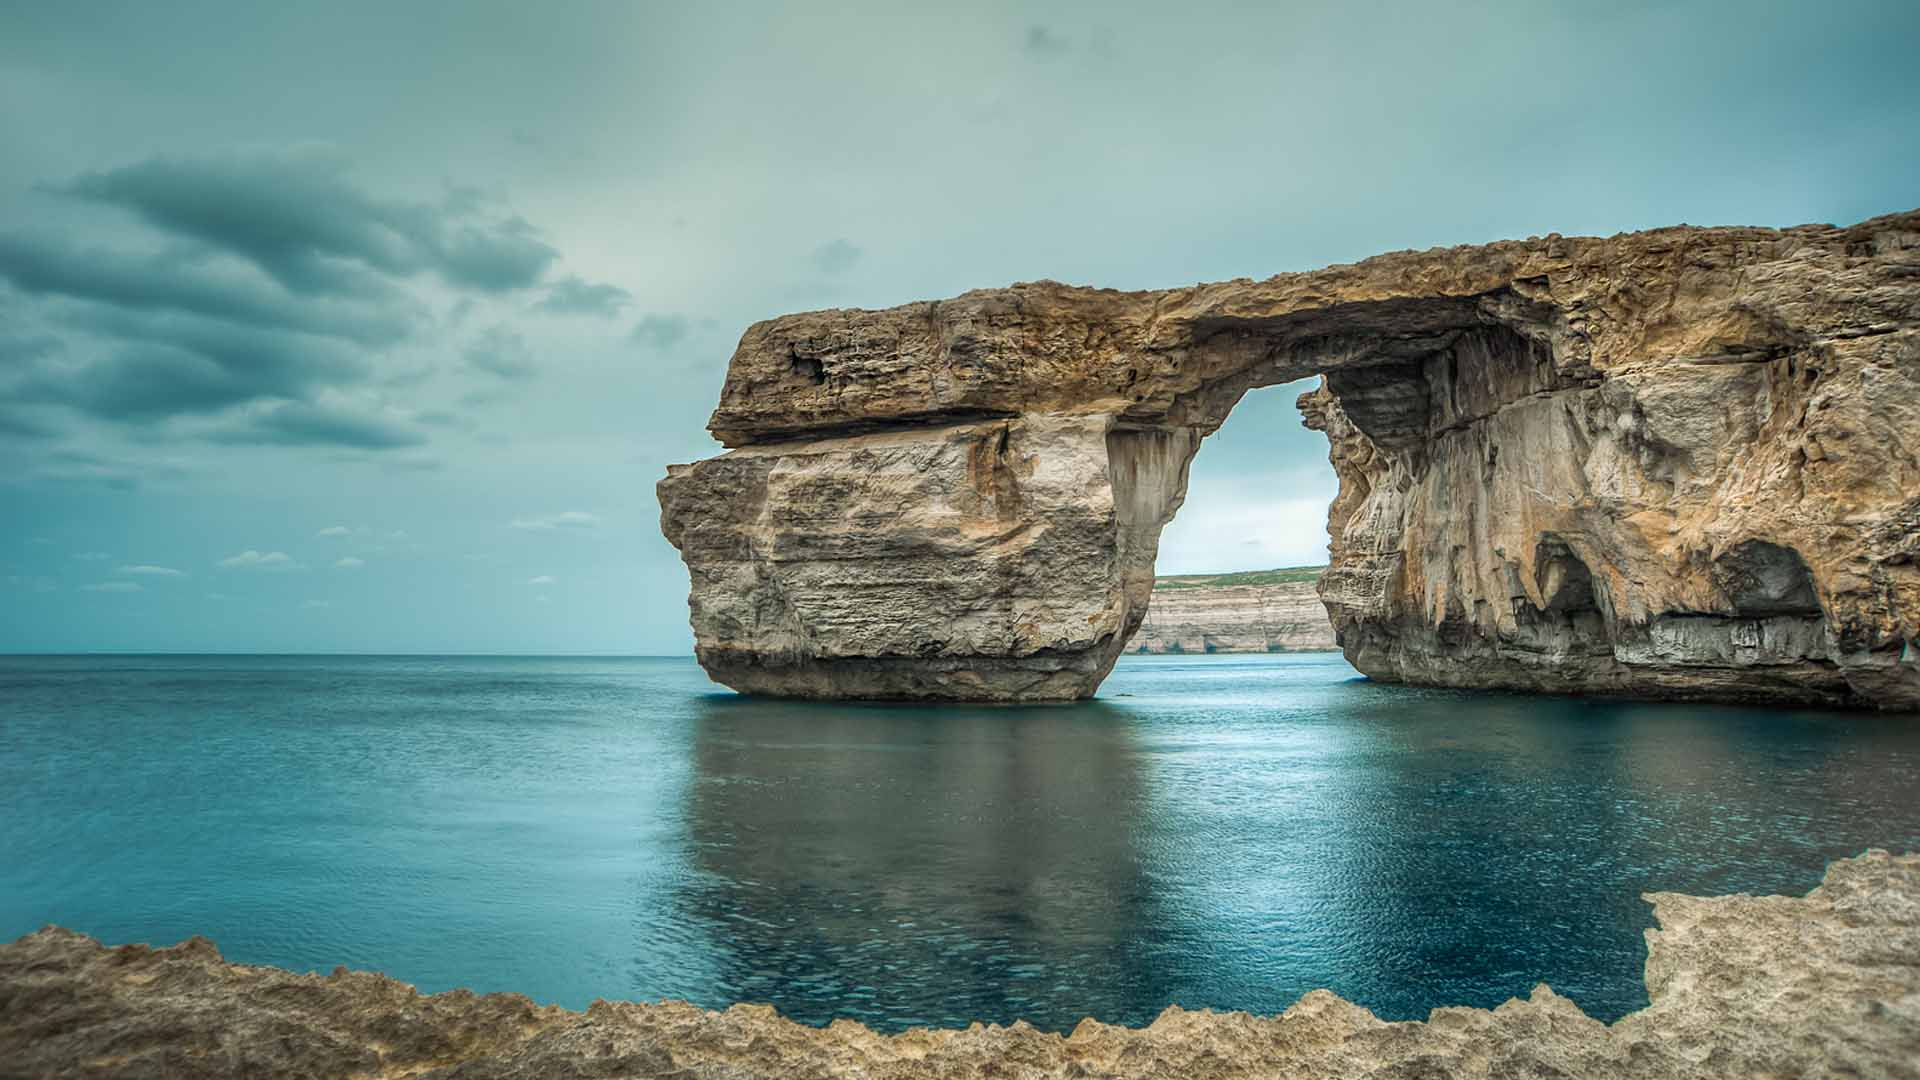 Azure Window in Malta. Photo credits: www.lifeasahuman.com